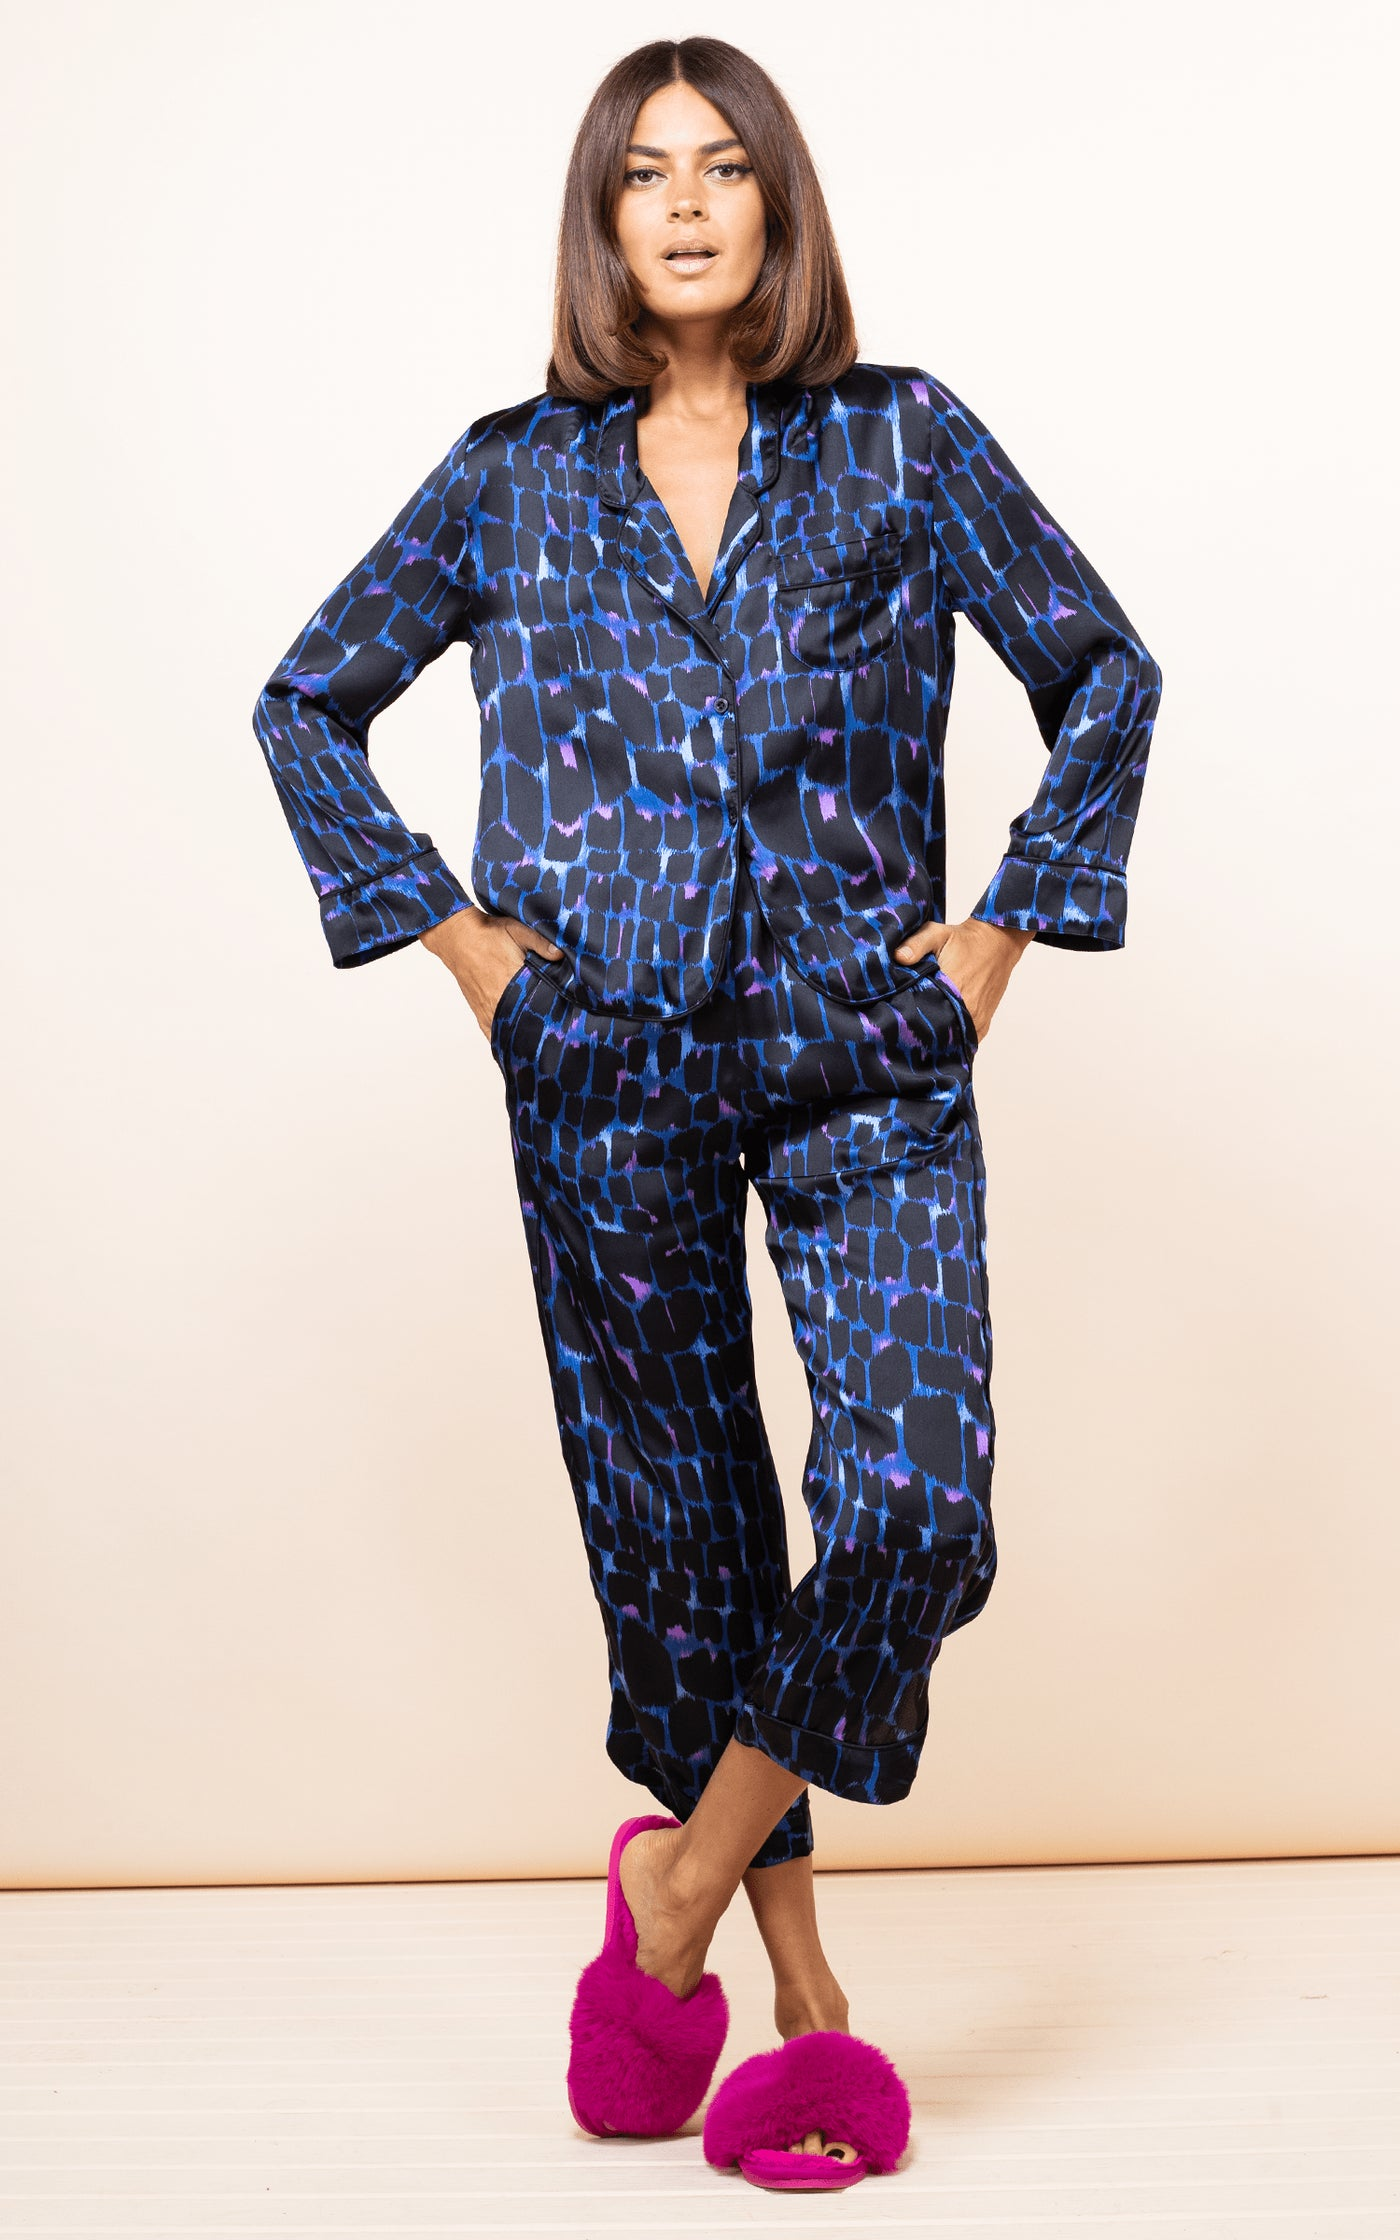 Dancing Leopard model faces forward with hands in pockets wearing Enya PJ Set in blue alligator print with slippers